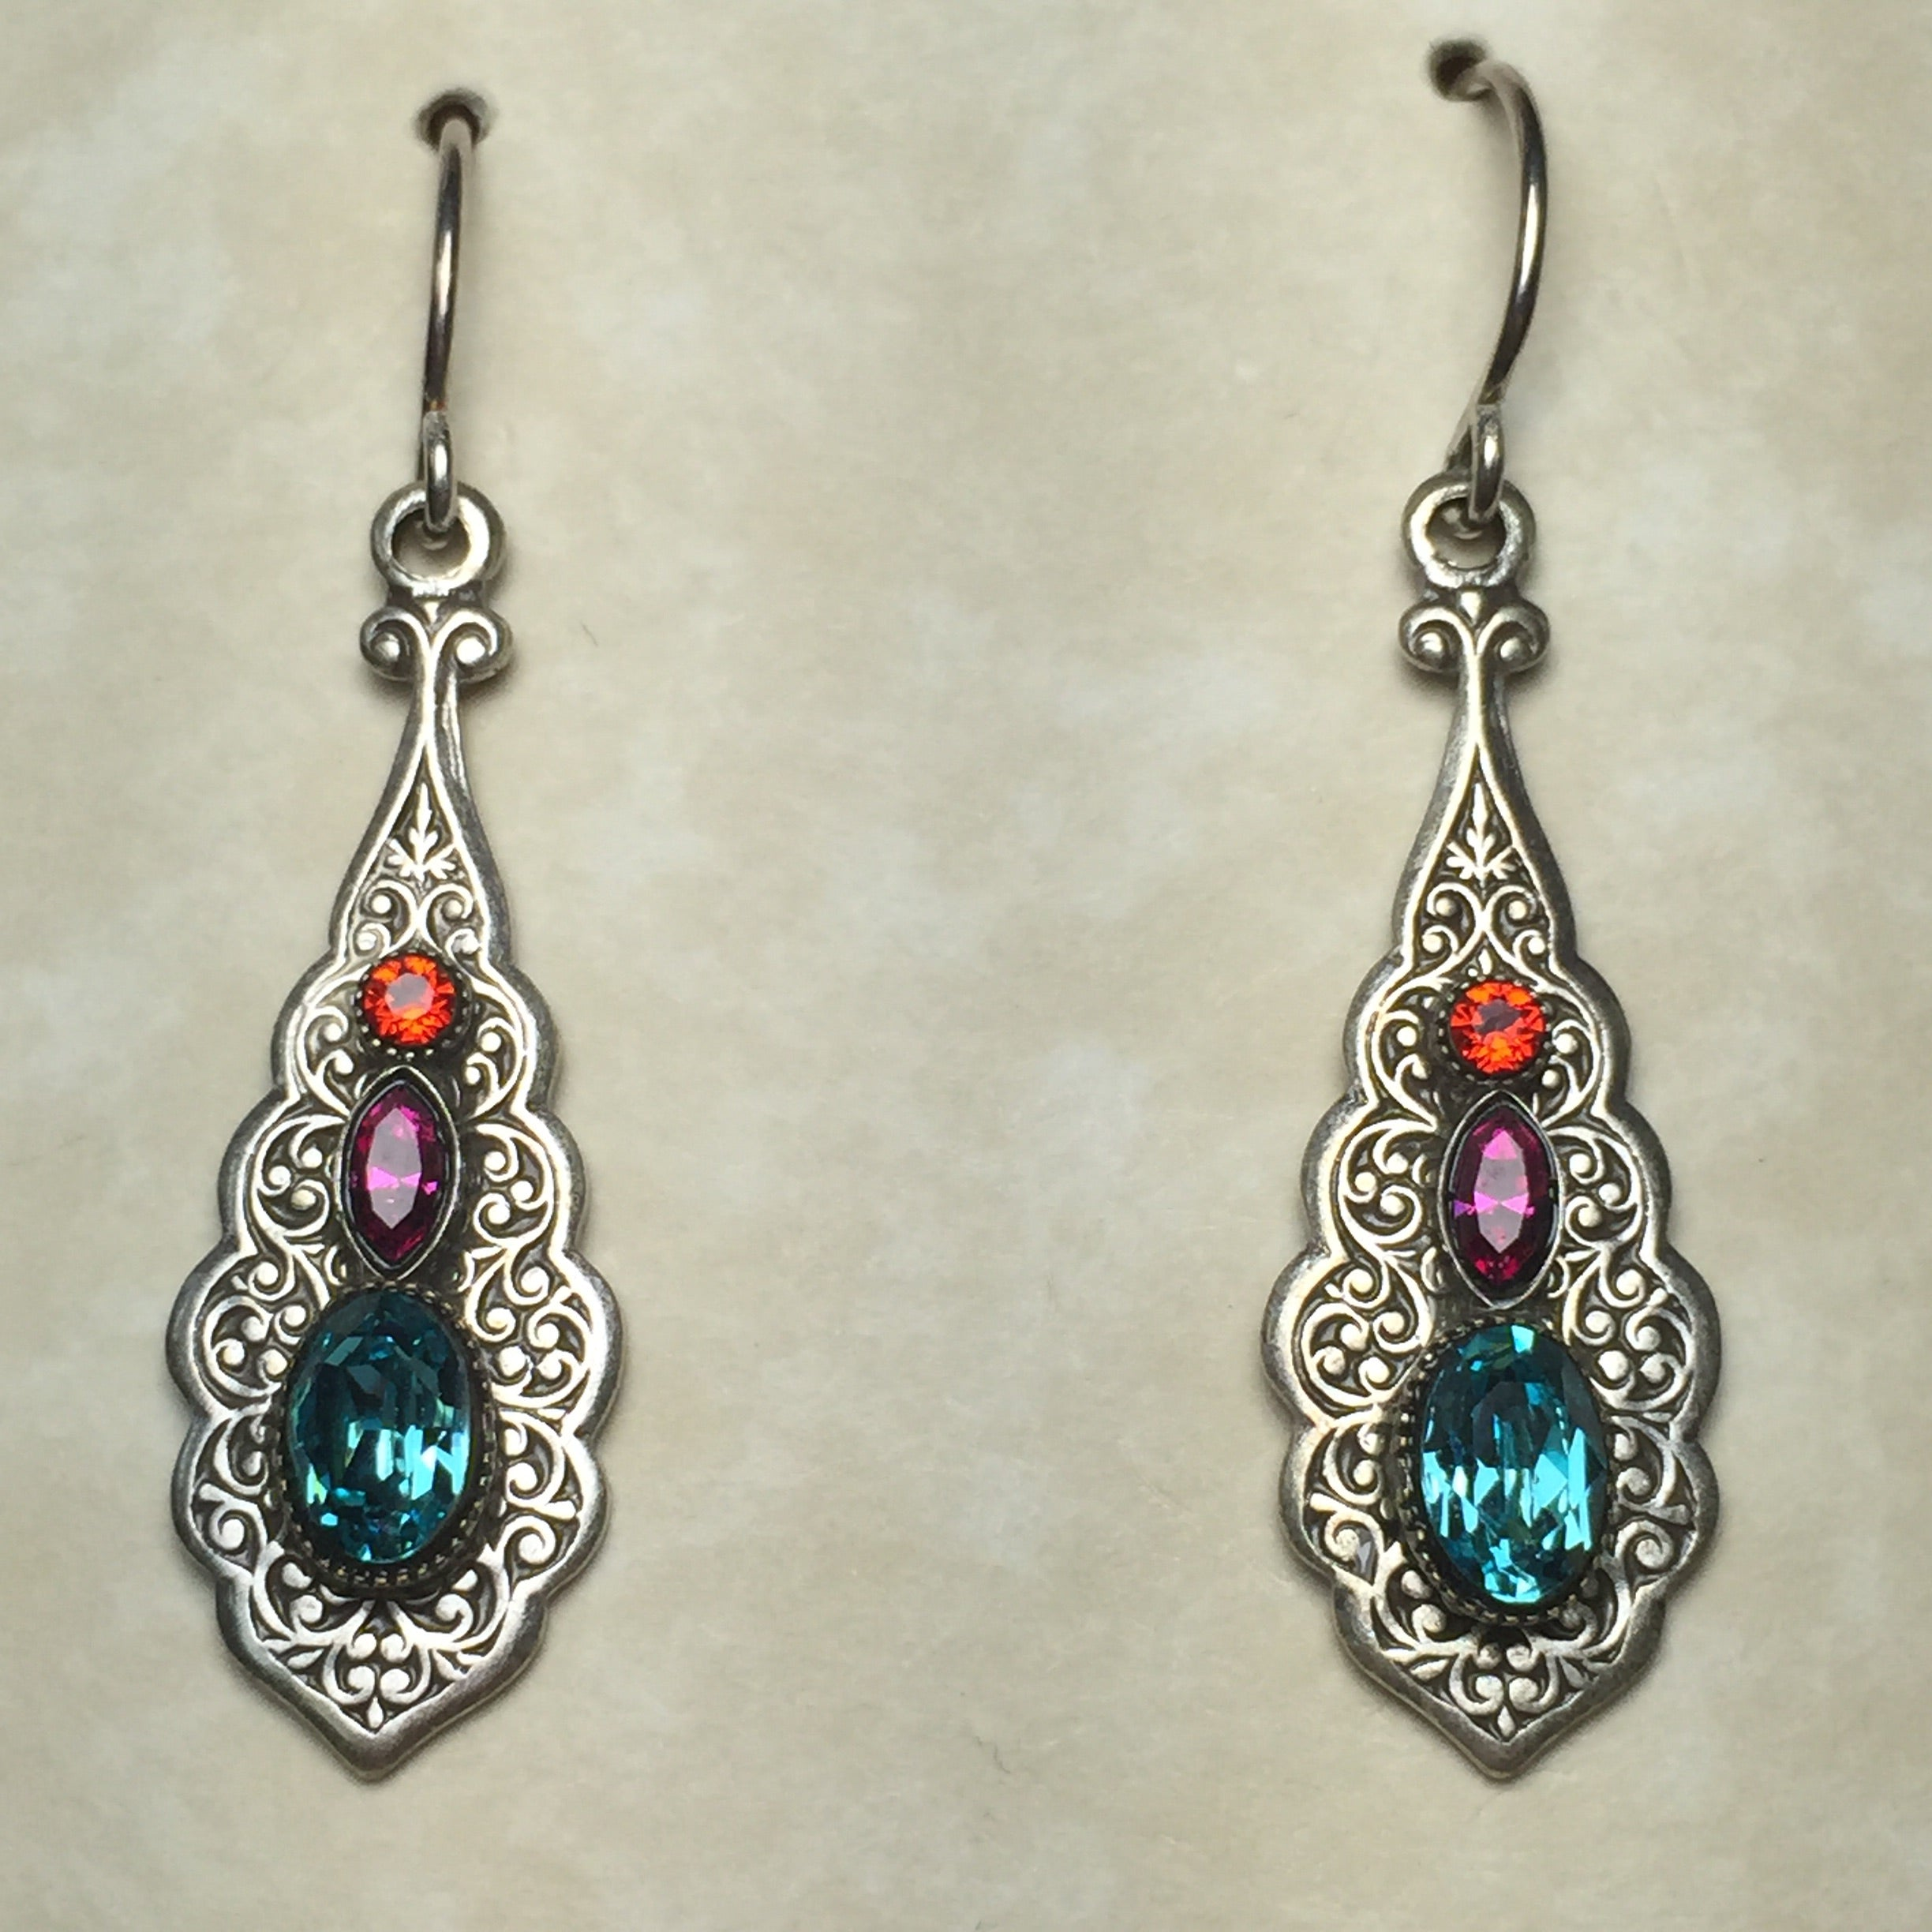 Firefly Crystal Filigree Teardrops